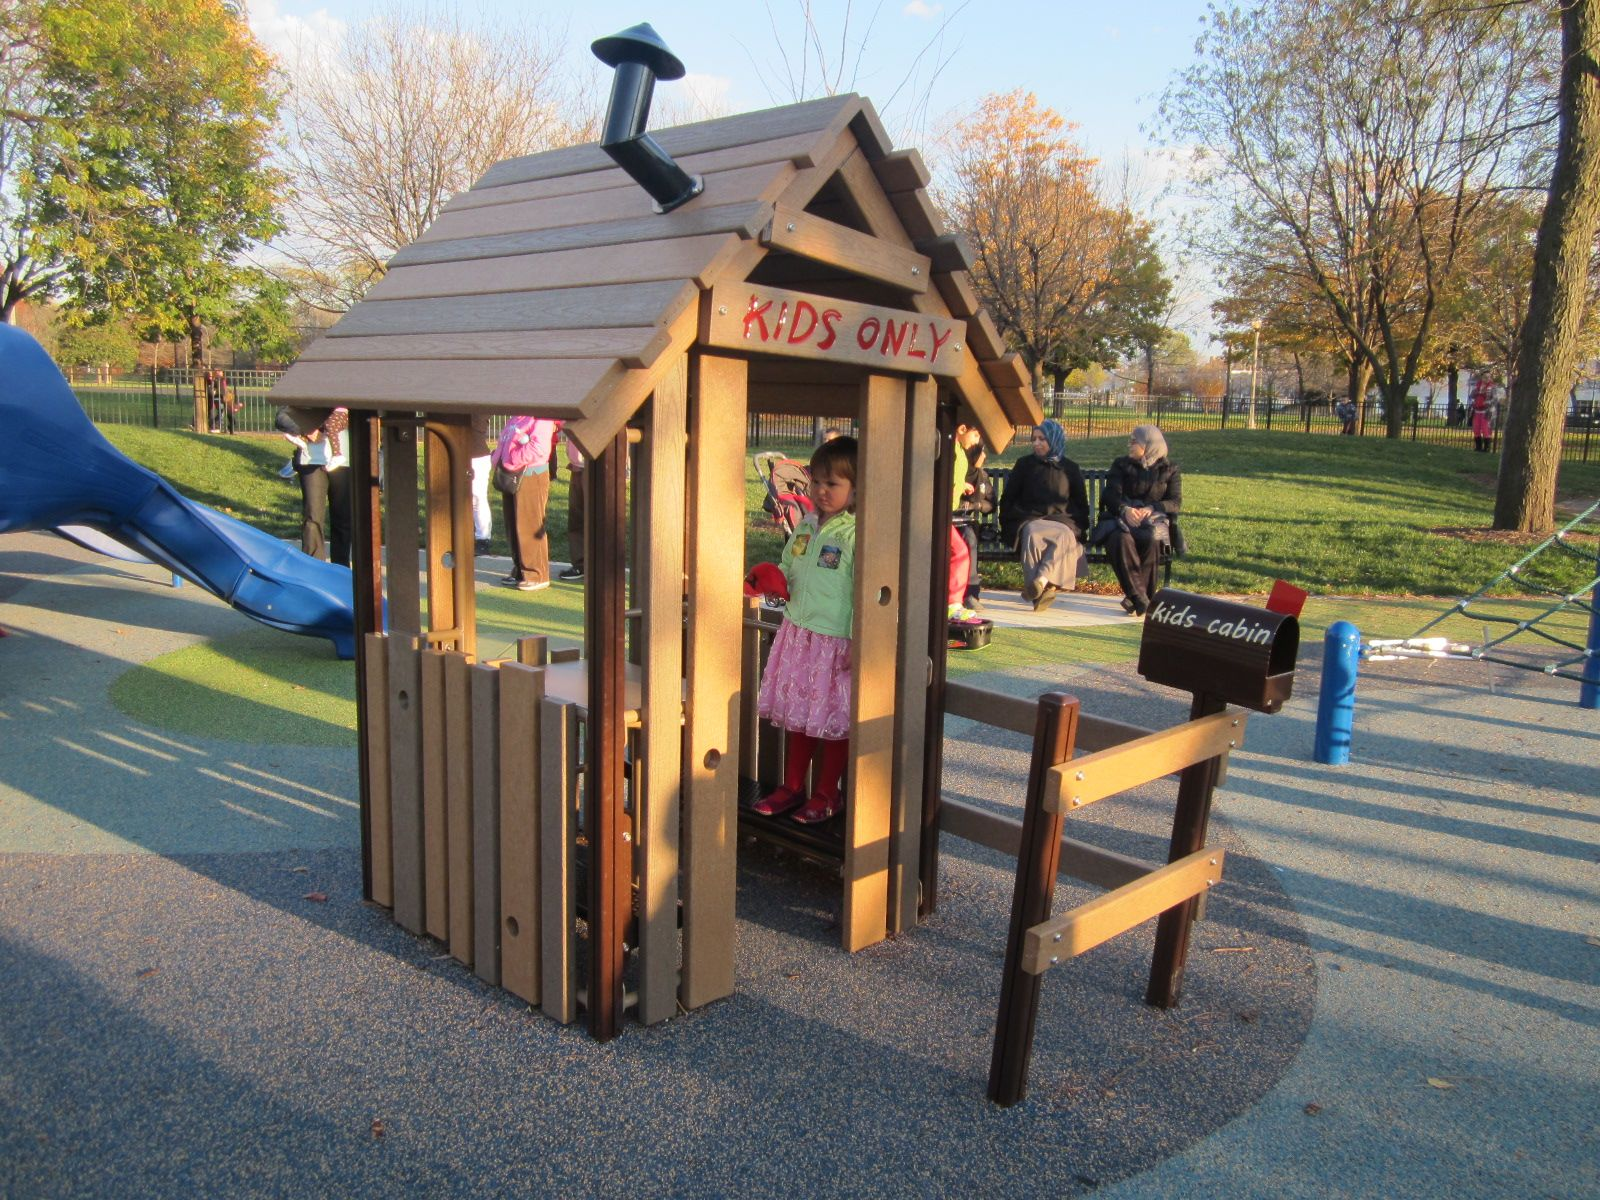 Natural Play Kids Cabin By Landscape Structures Inc Landscape Structure Nature Play Nature Themed